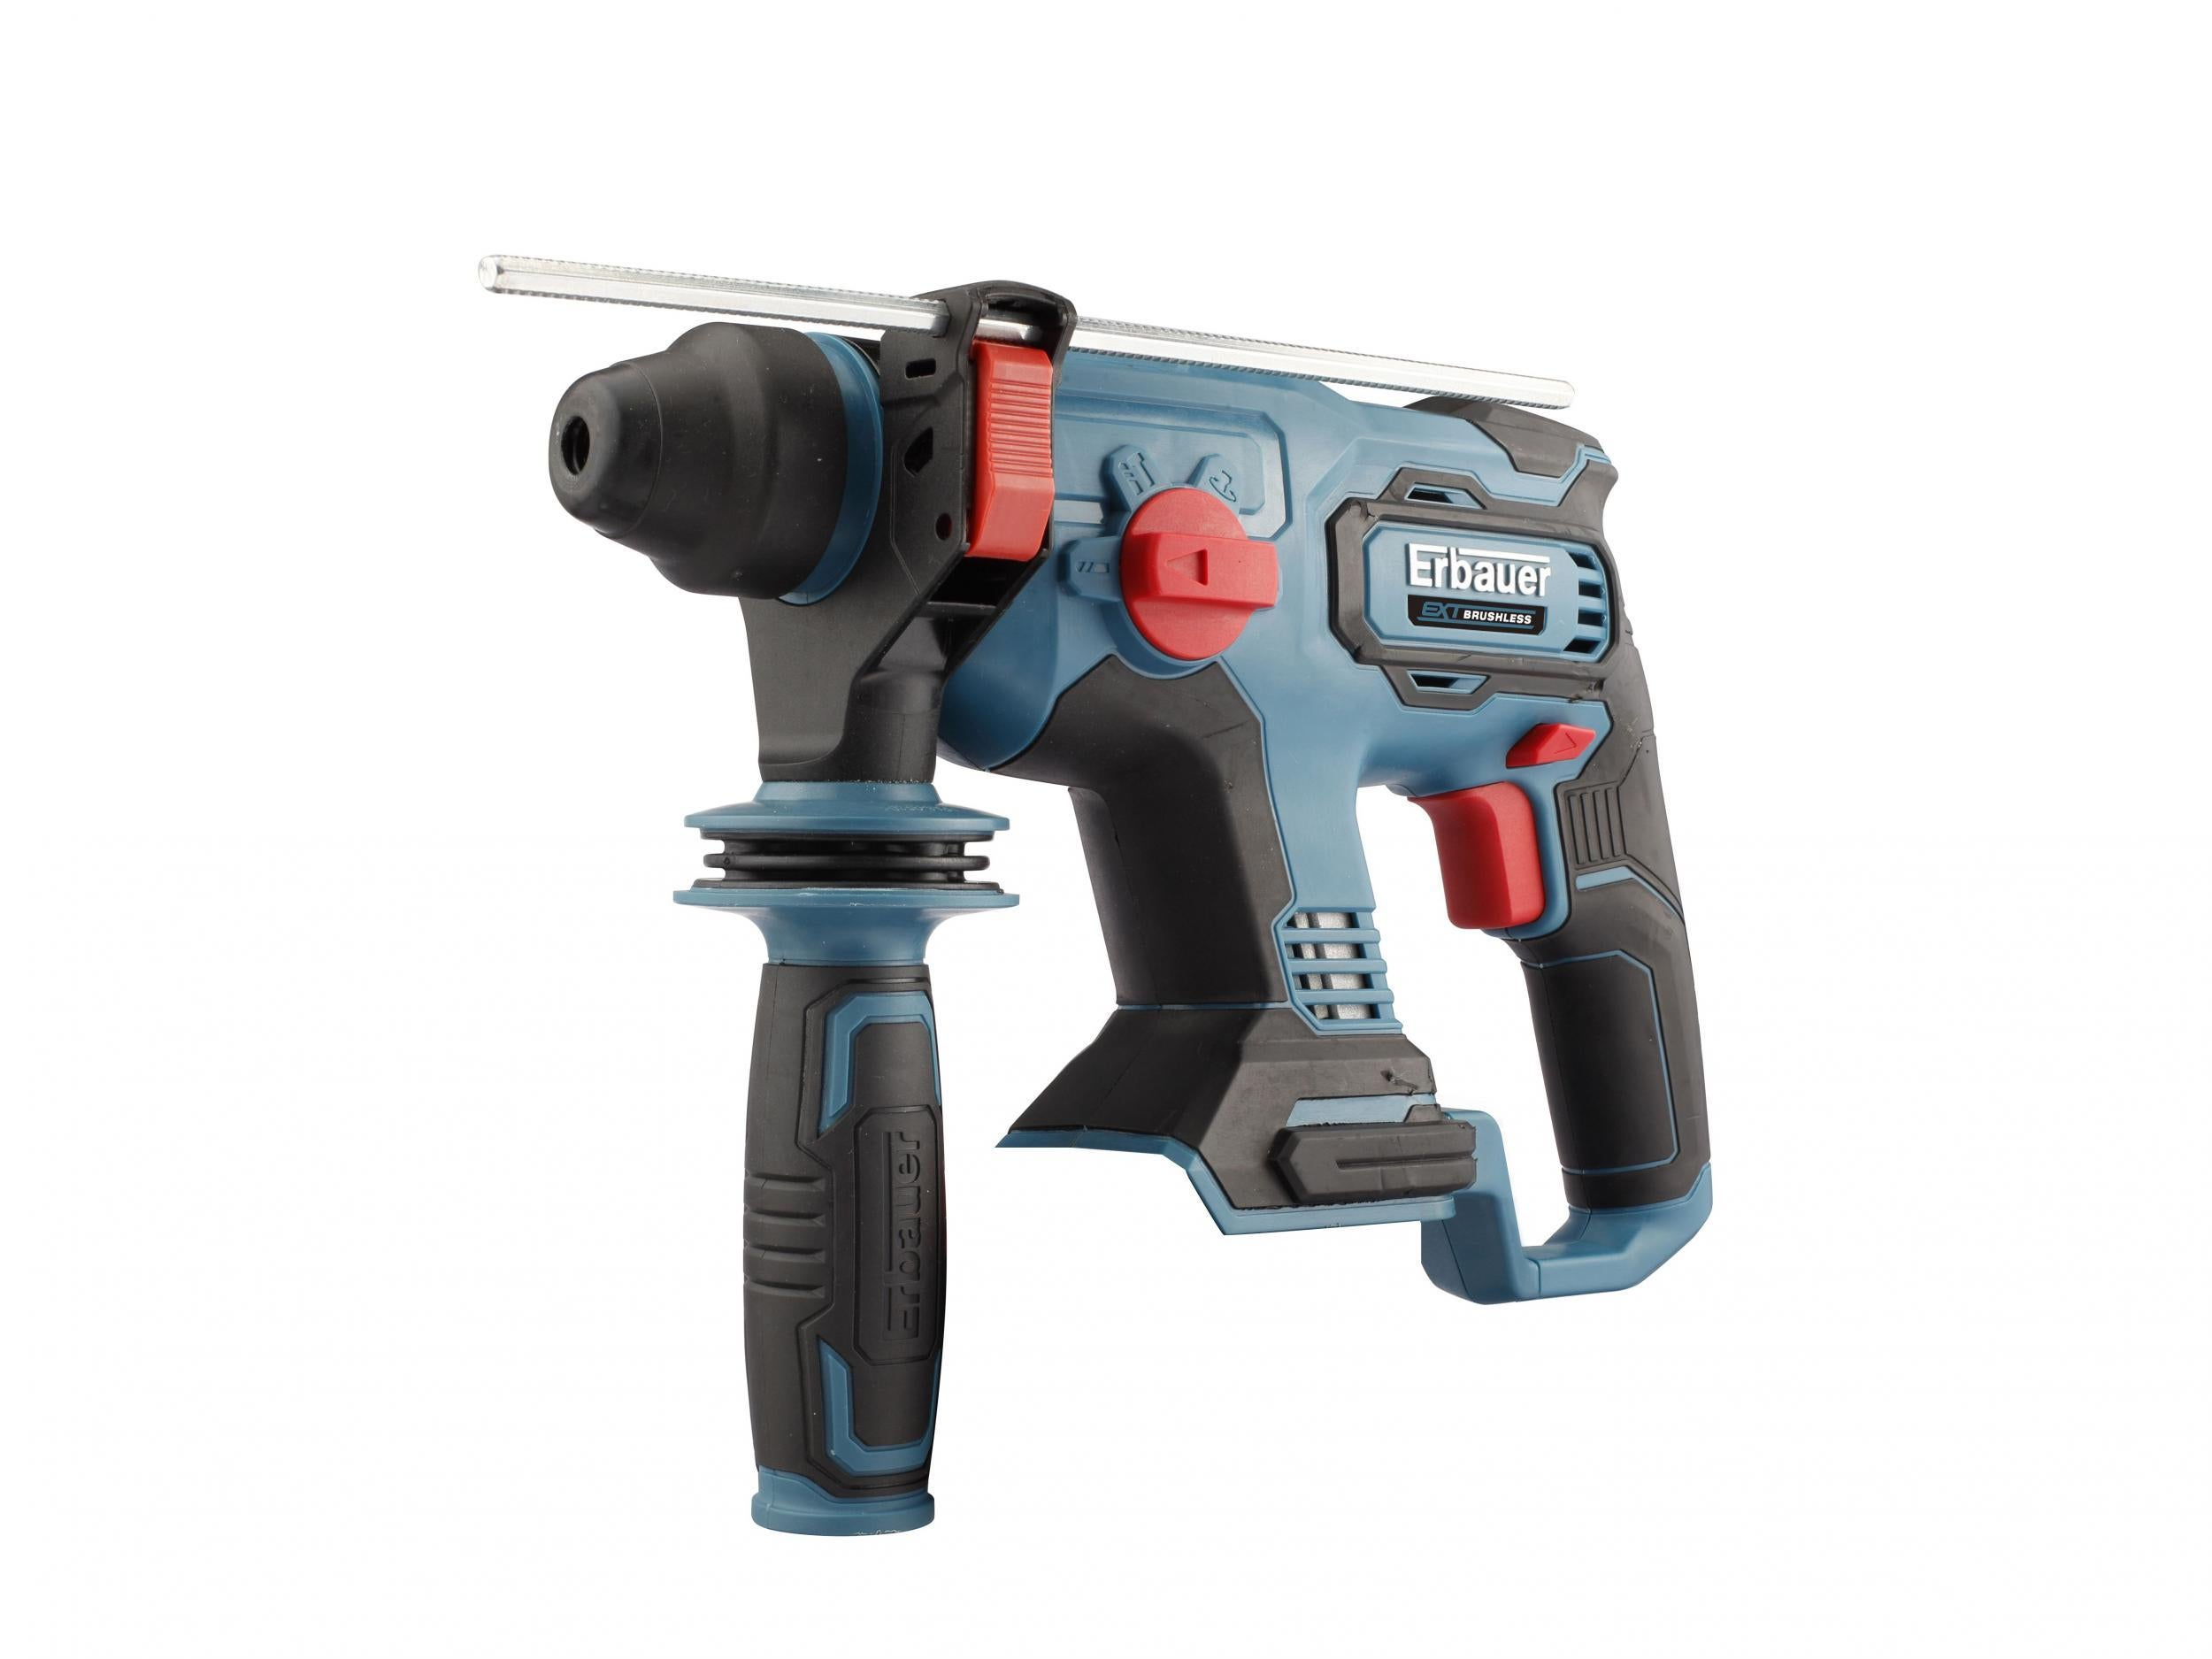 Best hammer drill for breaking up concrete, brick and stone